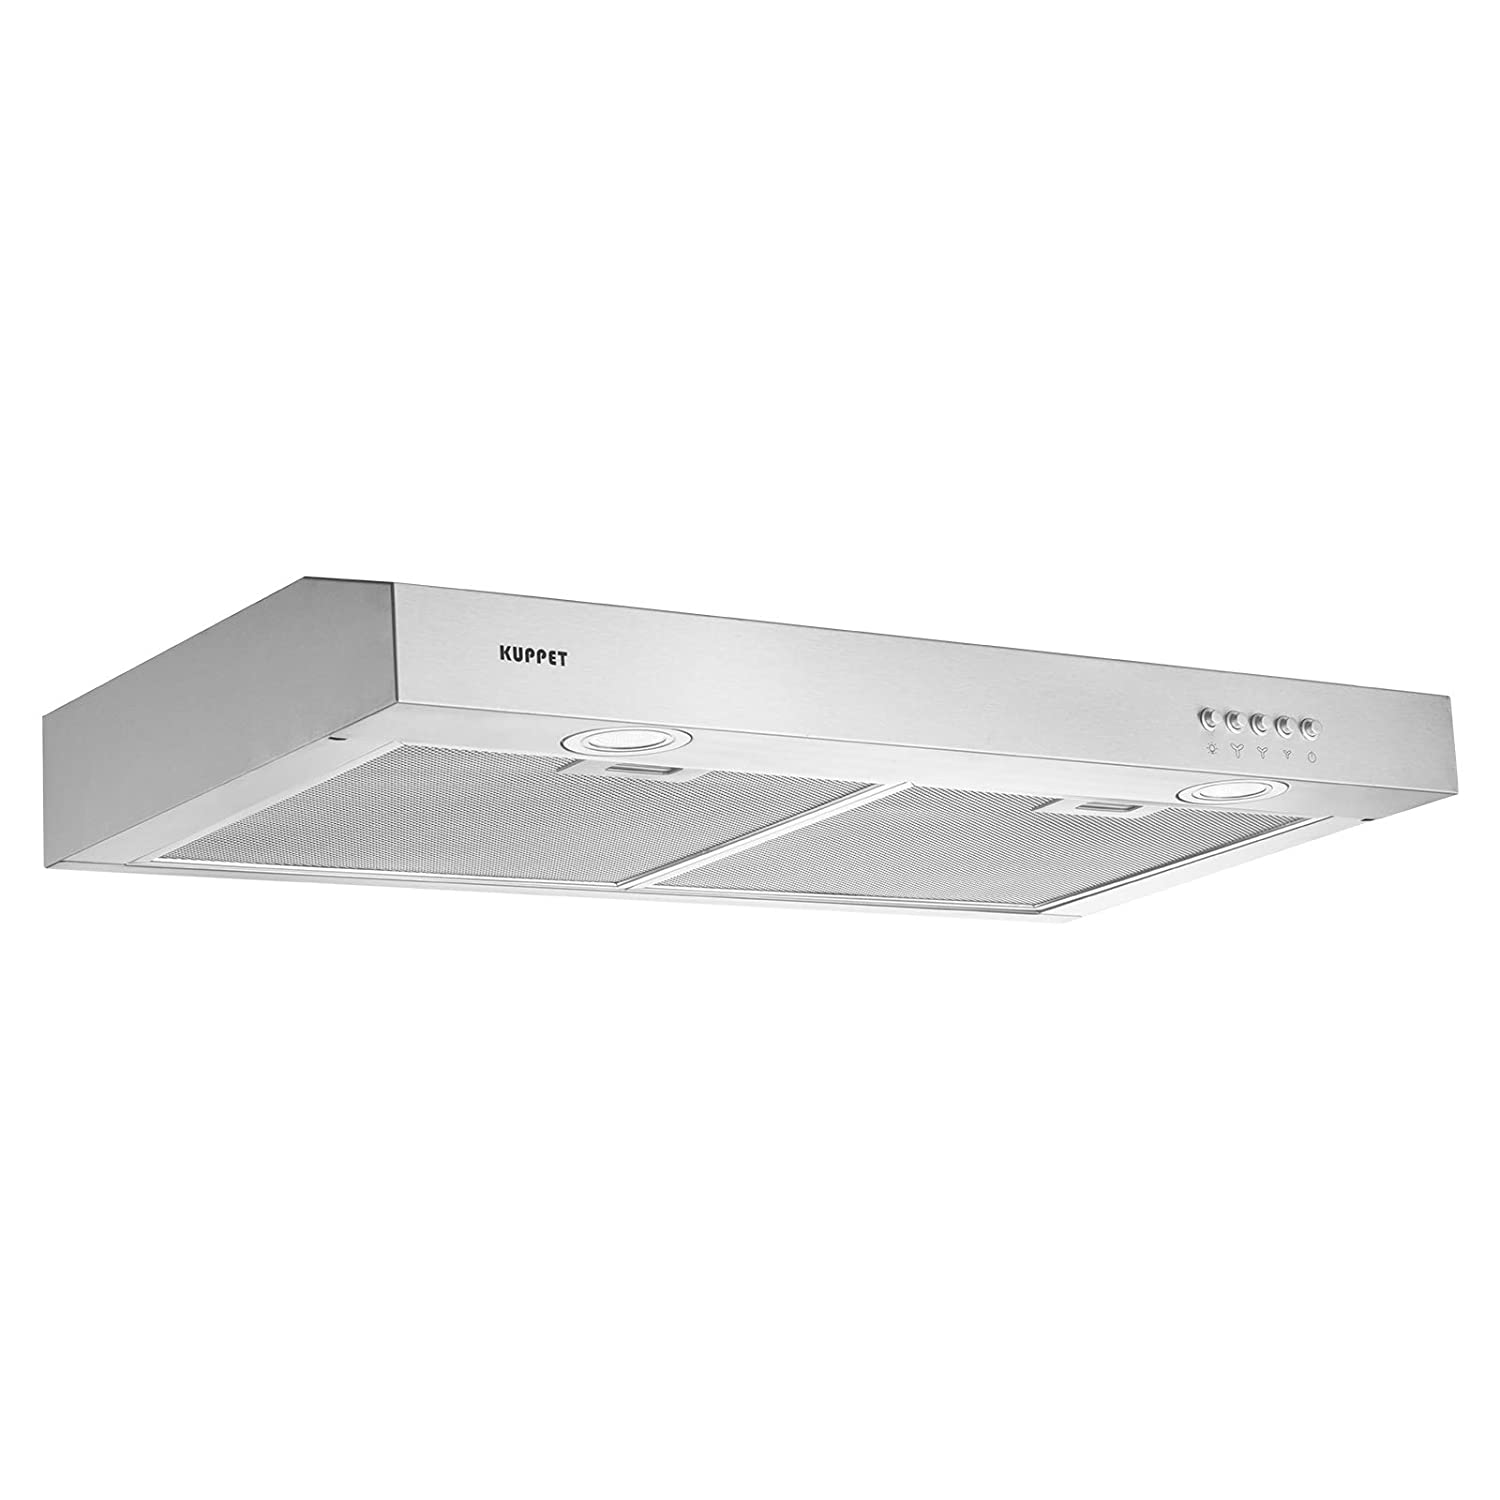 "KUPPET CE53 Kitchen Bath Collection 30"" Under Cabinet Range Hood, Tempered Glass with High-End LED Lights, Aluminum Mesh Filter, Push Button 3 Speed Controls, Silver Stainless Steel"